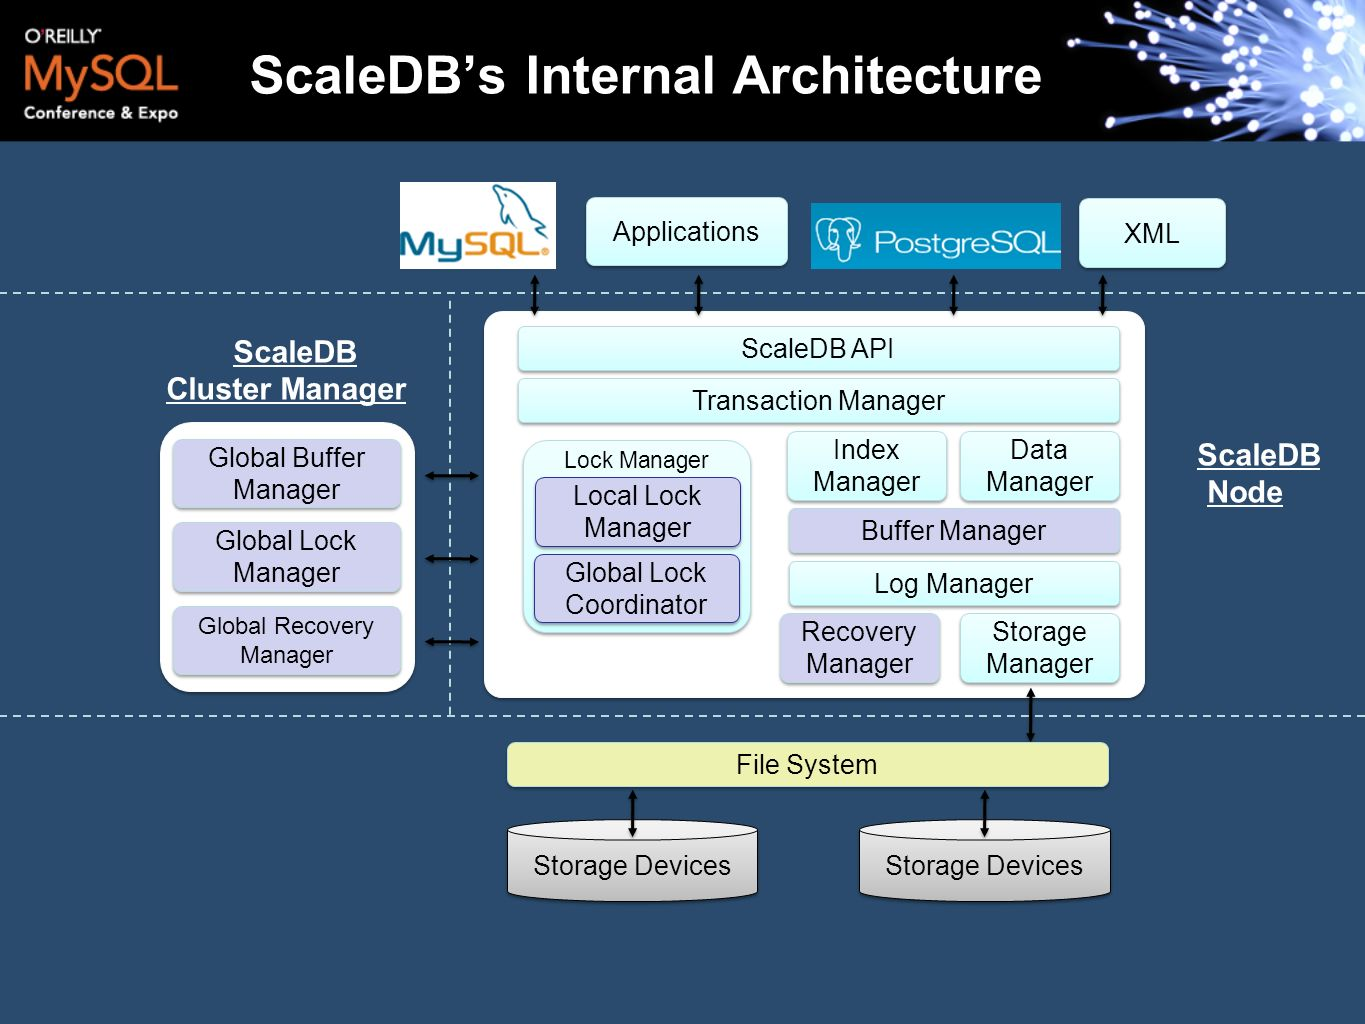 ScaleDB's Internal Architecture